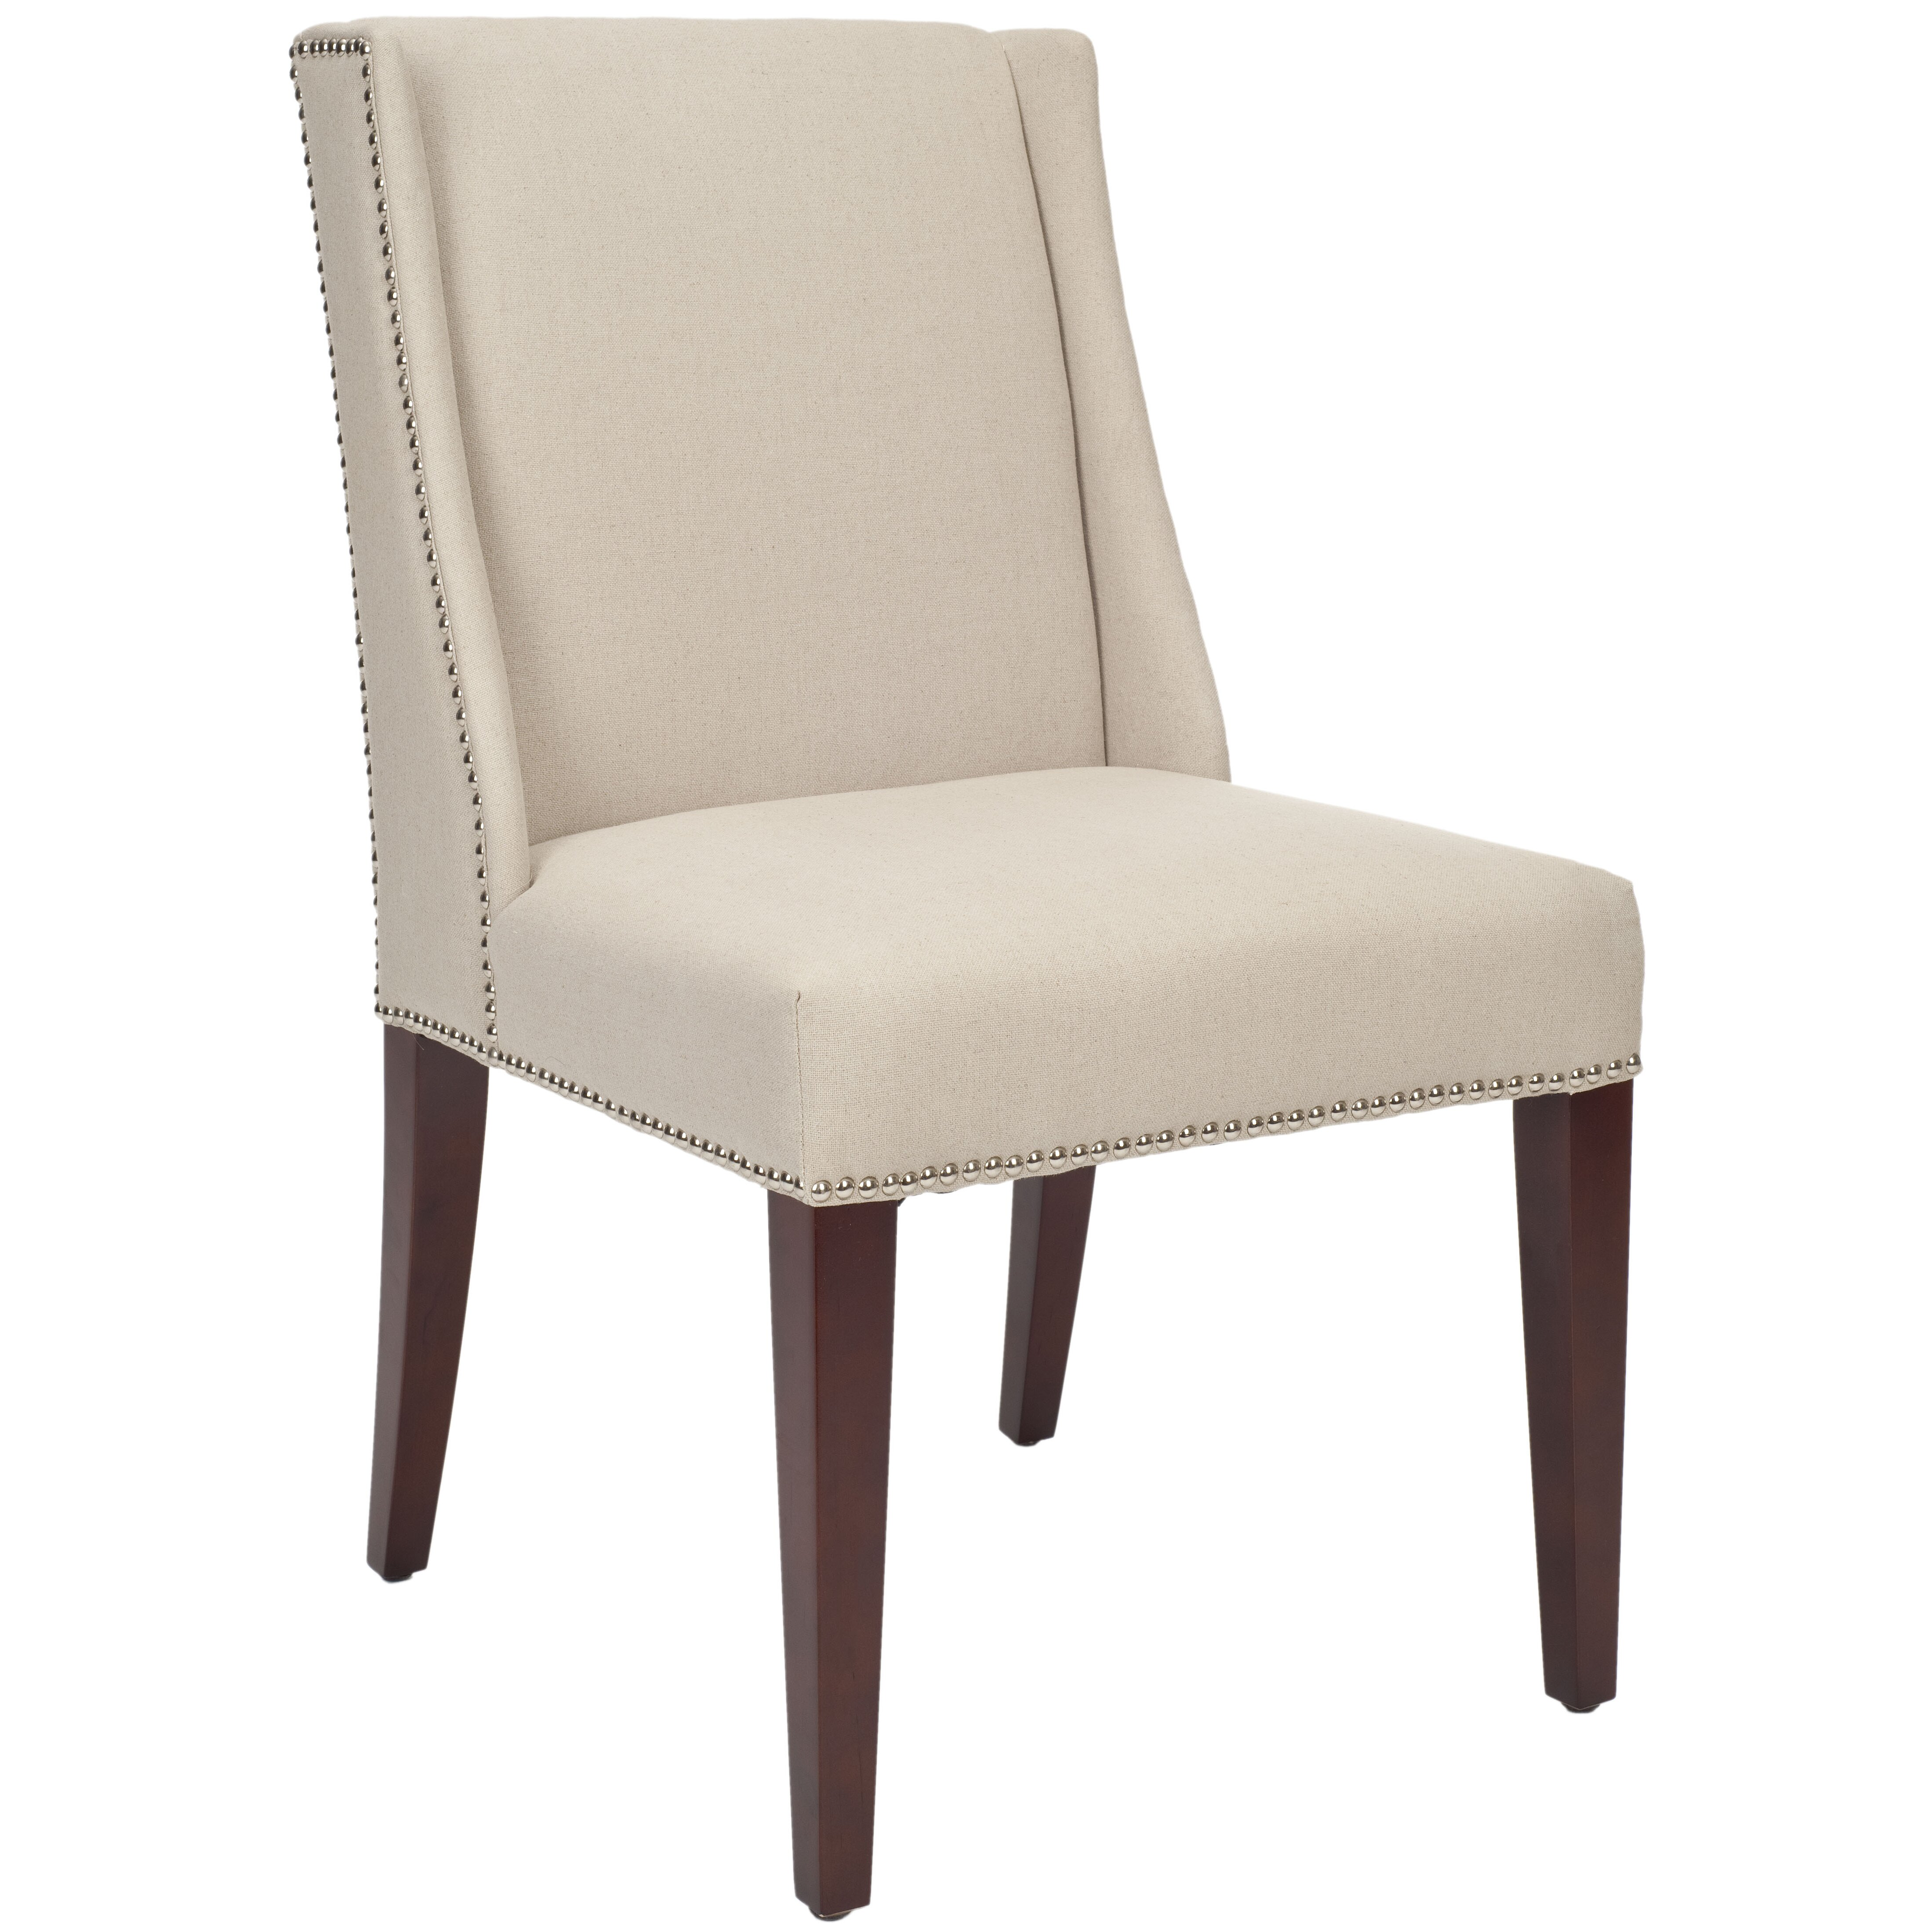 safavieh lily side chair reviews wayfair